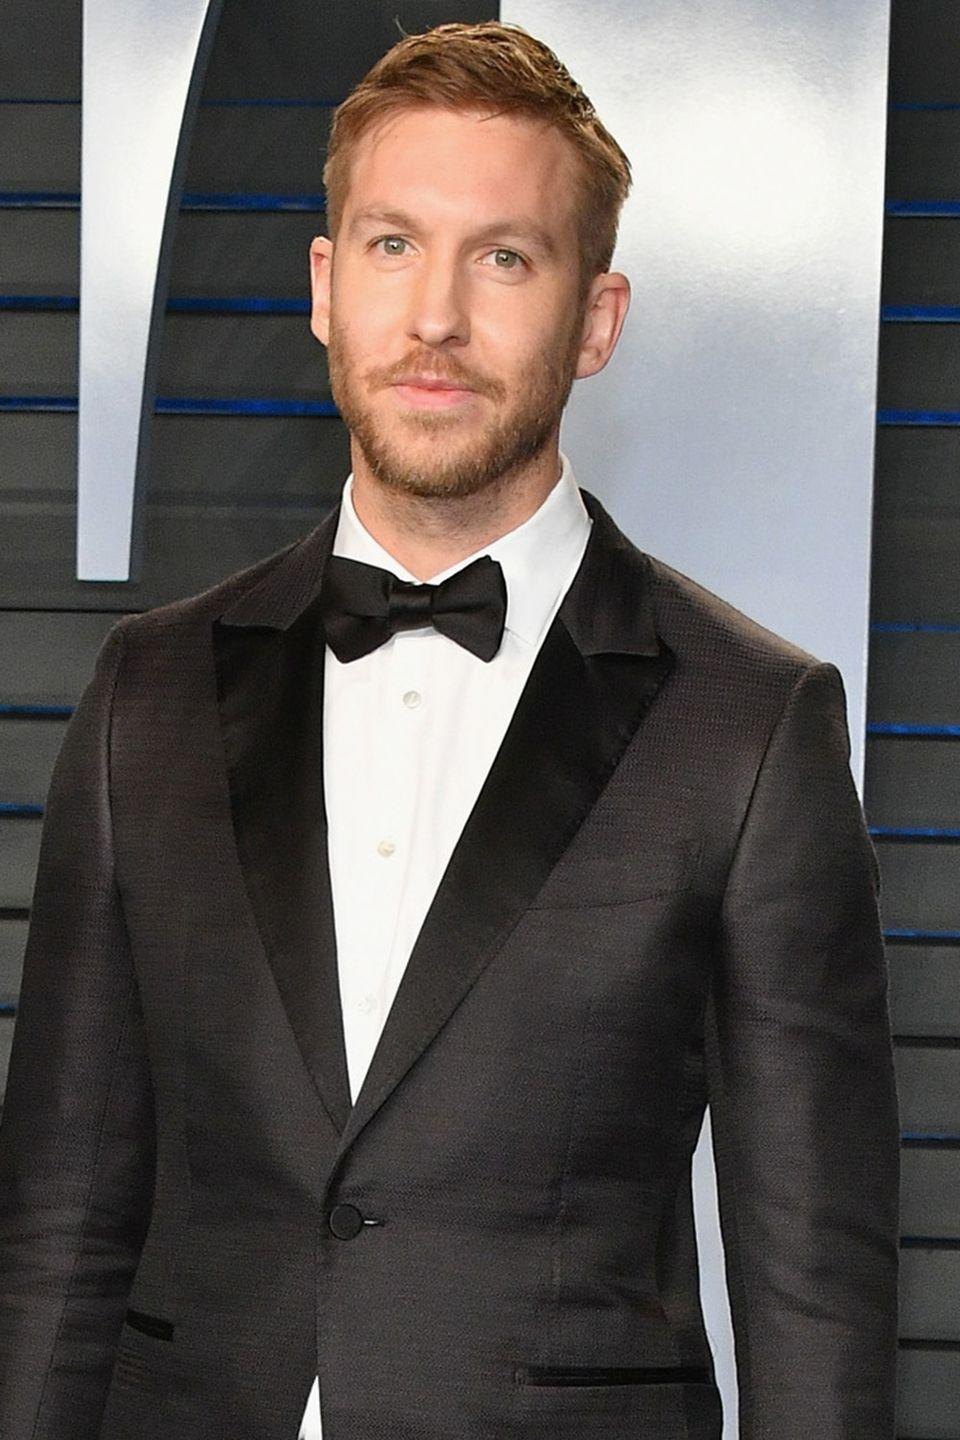 "<p><strong>Born</strong>: Adam Richard Wiles</p><p>Fans were a little confused when Taylor Swift gave her former boyfriend a shout-out at the iHeart Radio Music Awards, calling him ""Adam."" In a later interview with <em><a href=""https://www.shortlist.com/"" rel=""nofollow noopener"" target=""_blank"" data-ylk=""slk:Shortlist"" class=""link rapid-noclick-resp"">Shortlist</a></em>, Harris explained that he adopted his stage name in an attempt to be more ""racially ambiguous.""</p><p>""My first single was more of a soul track, and I thought Calvin Harris sounded a bit more racially ambiguous. I thought people might not know if I was black or not. After that, I was stuck with it.""</p>"